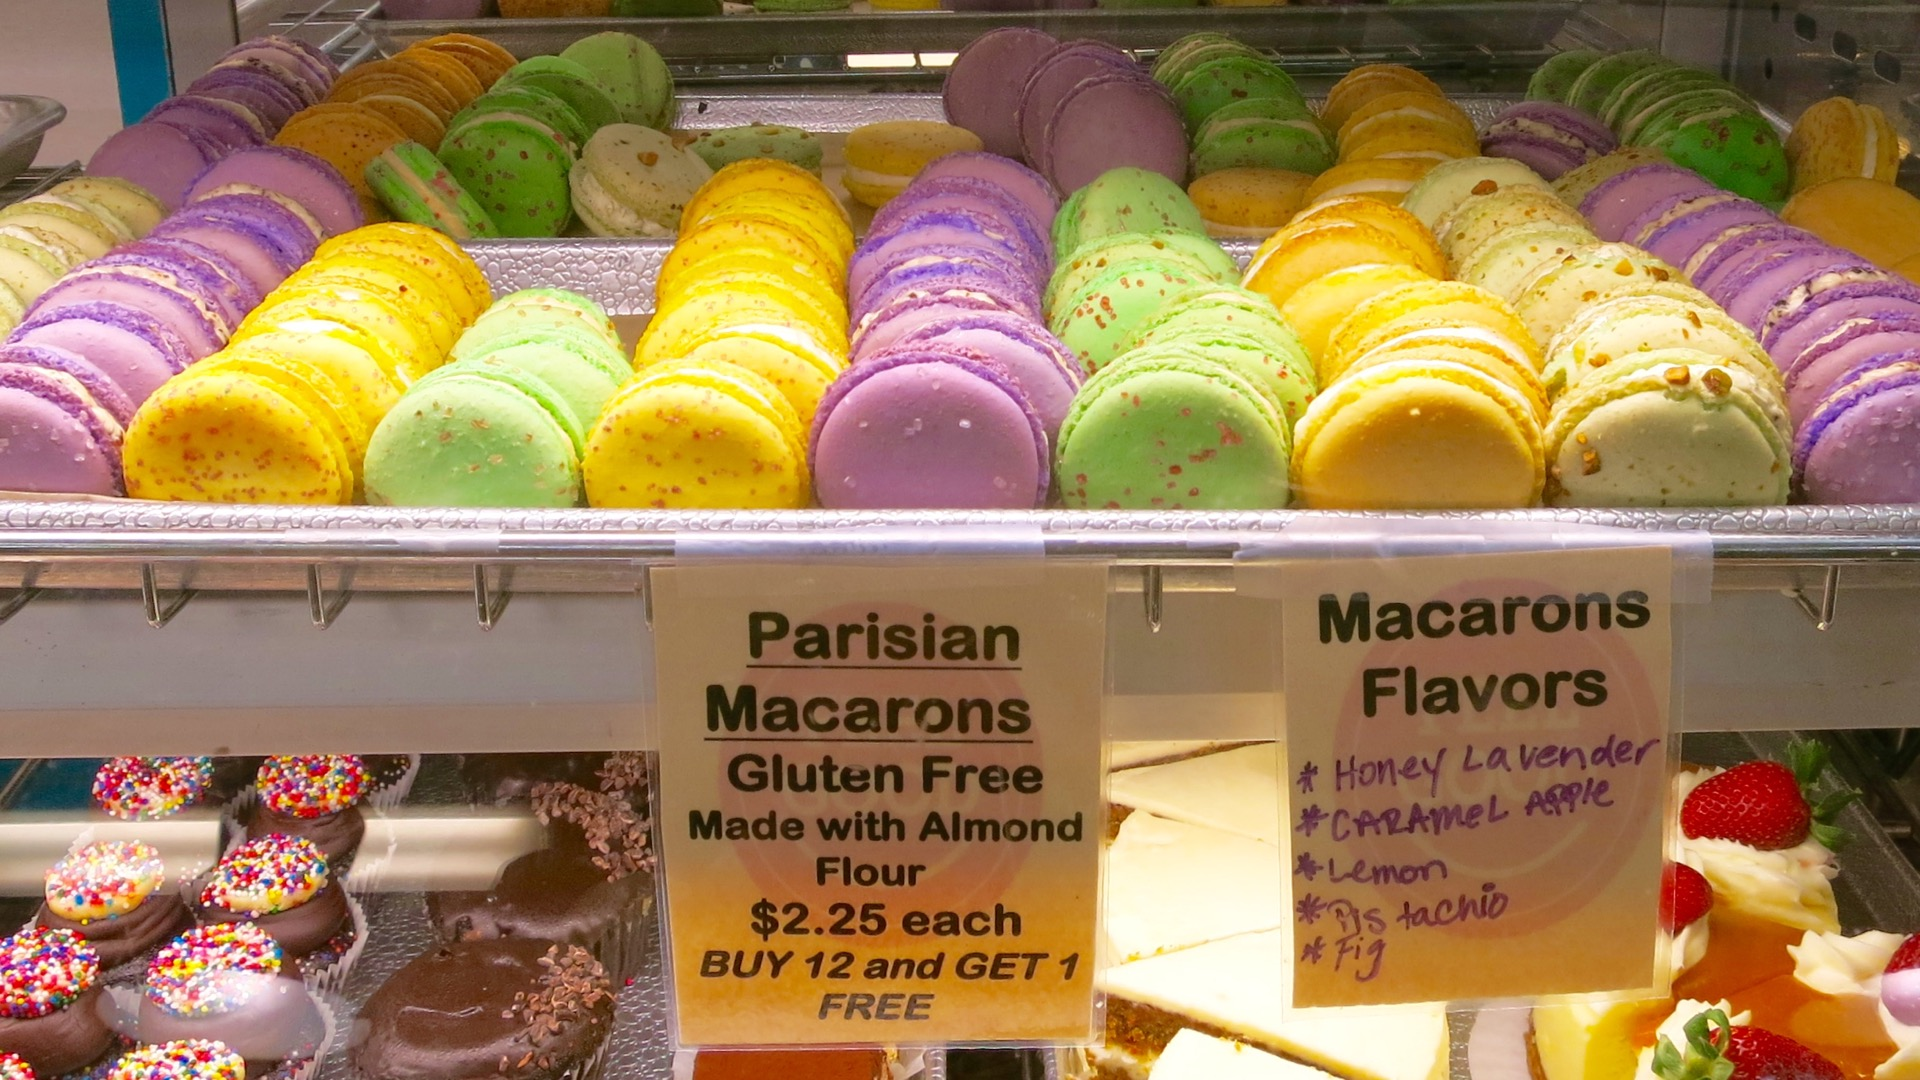 Feel Good Bakery touts the gluten-free ingredients of these almond flour-based desserts.